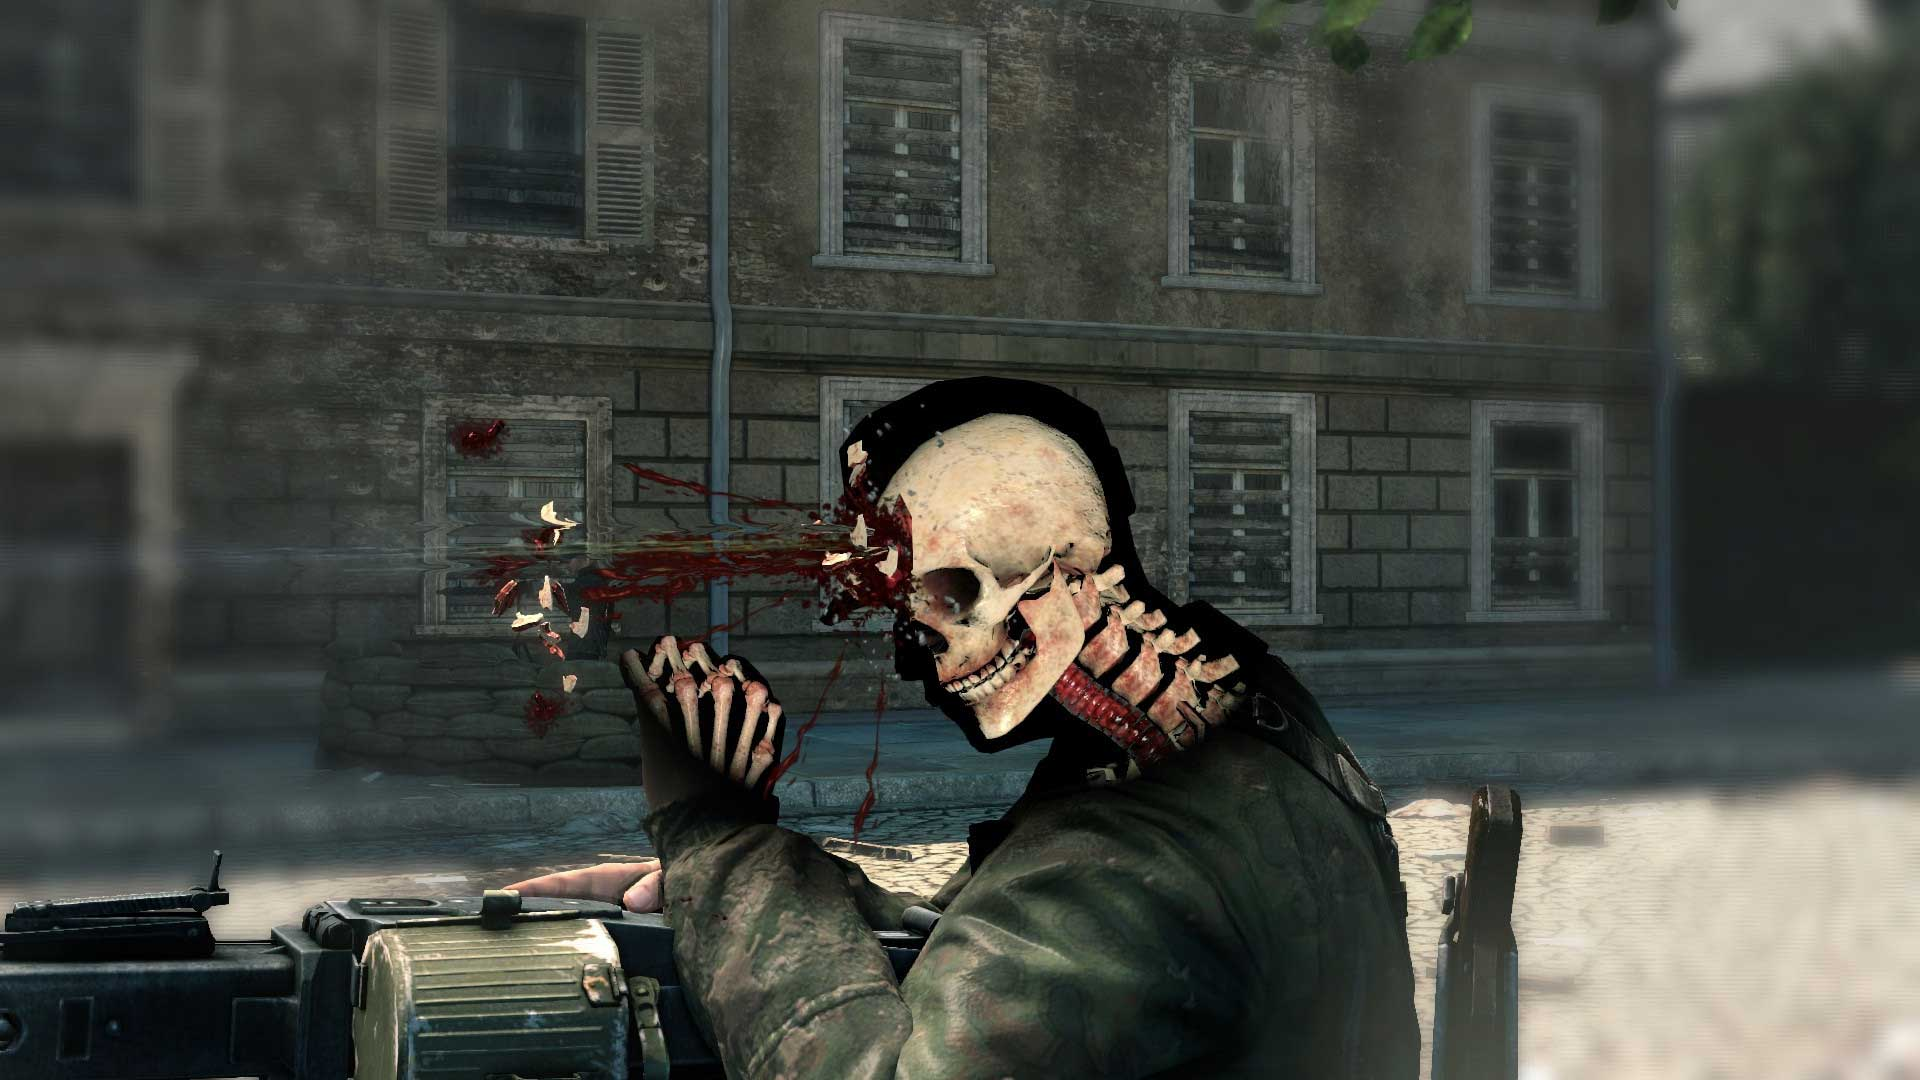 V2's X-Ray kill cam system is retained as well. Where the previous game only shows the body's internal structure at point of impact, the new game expands to ...